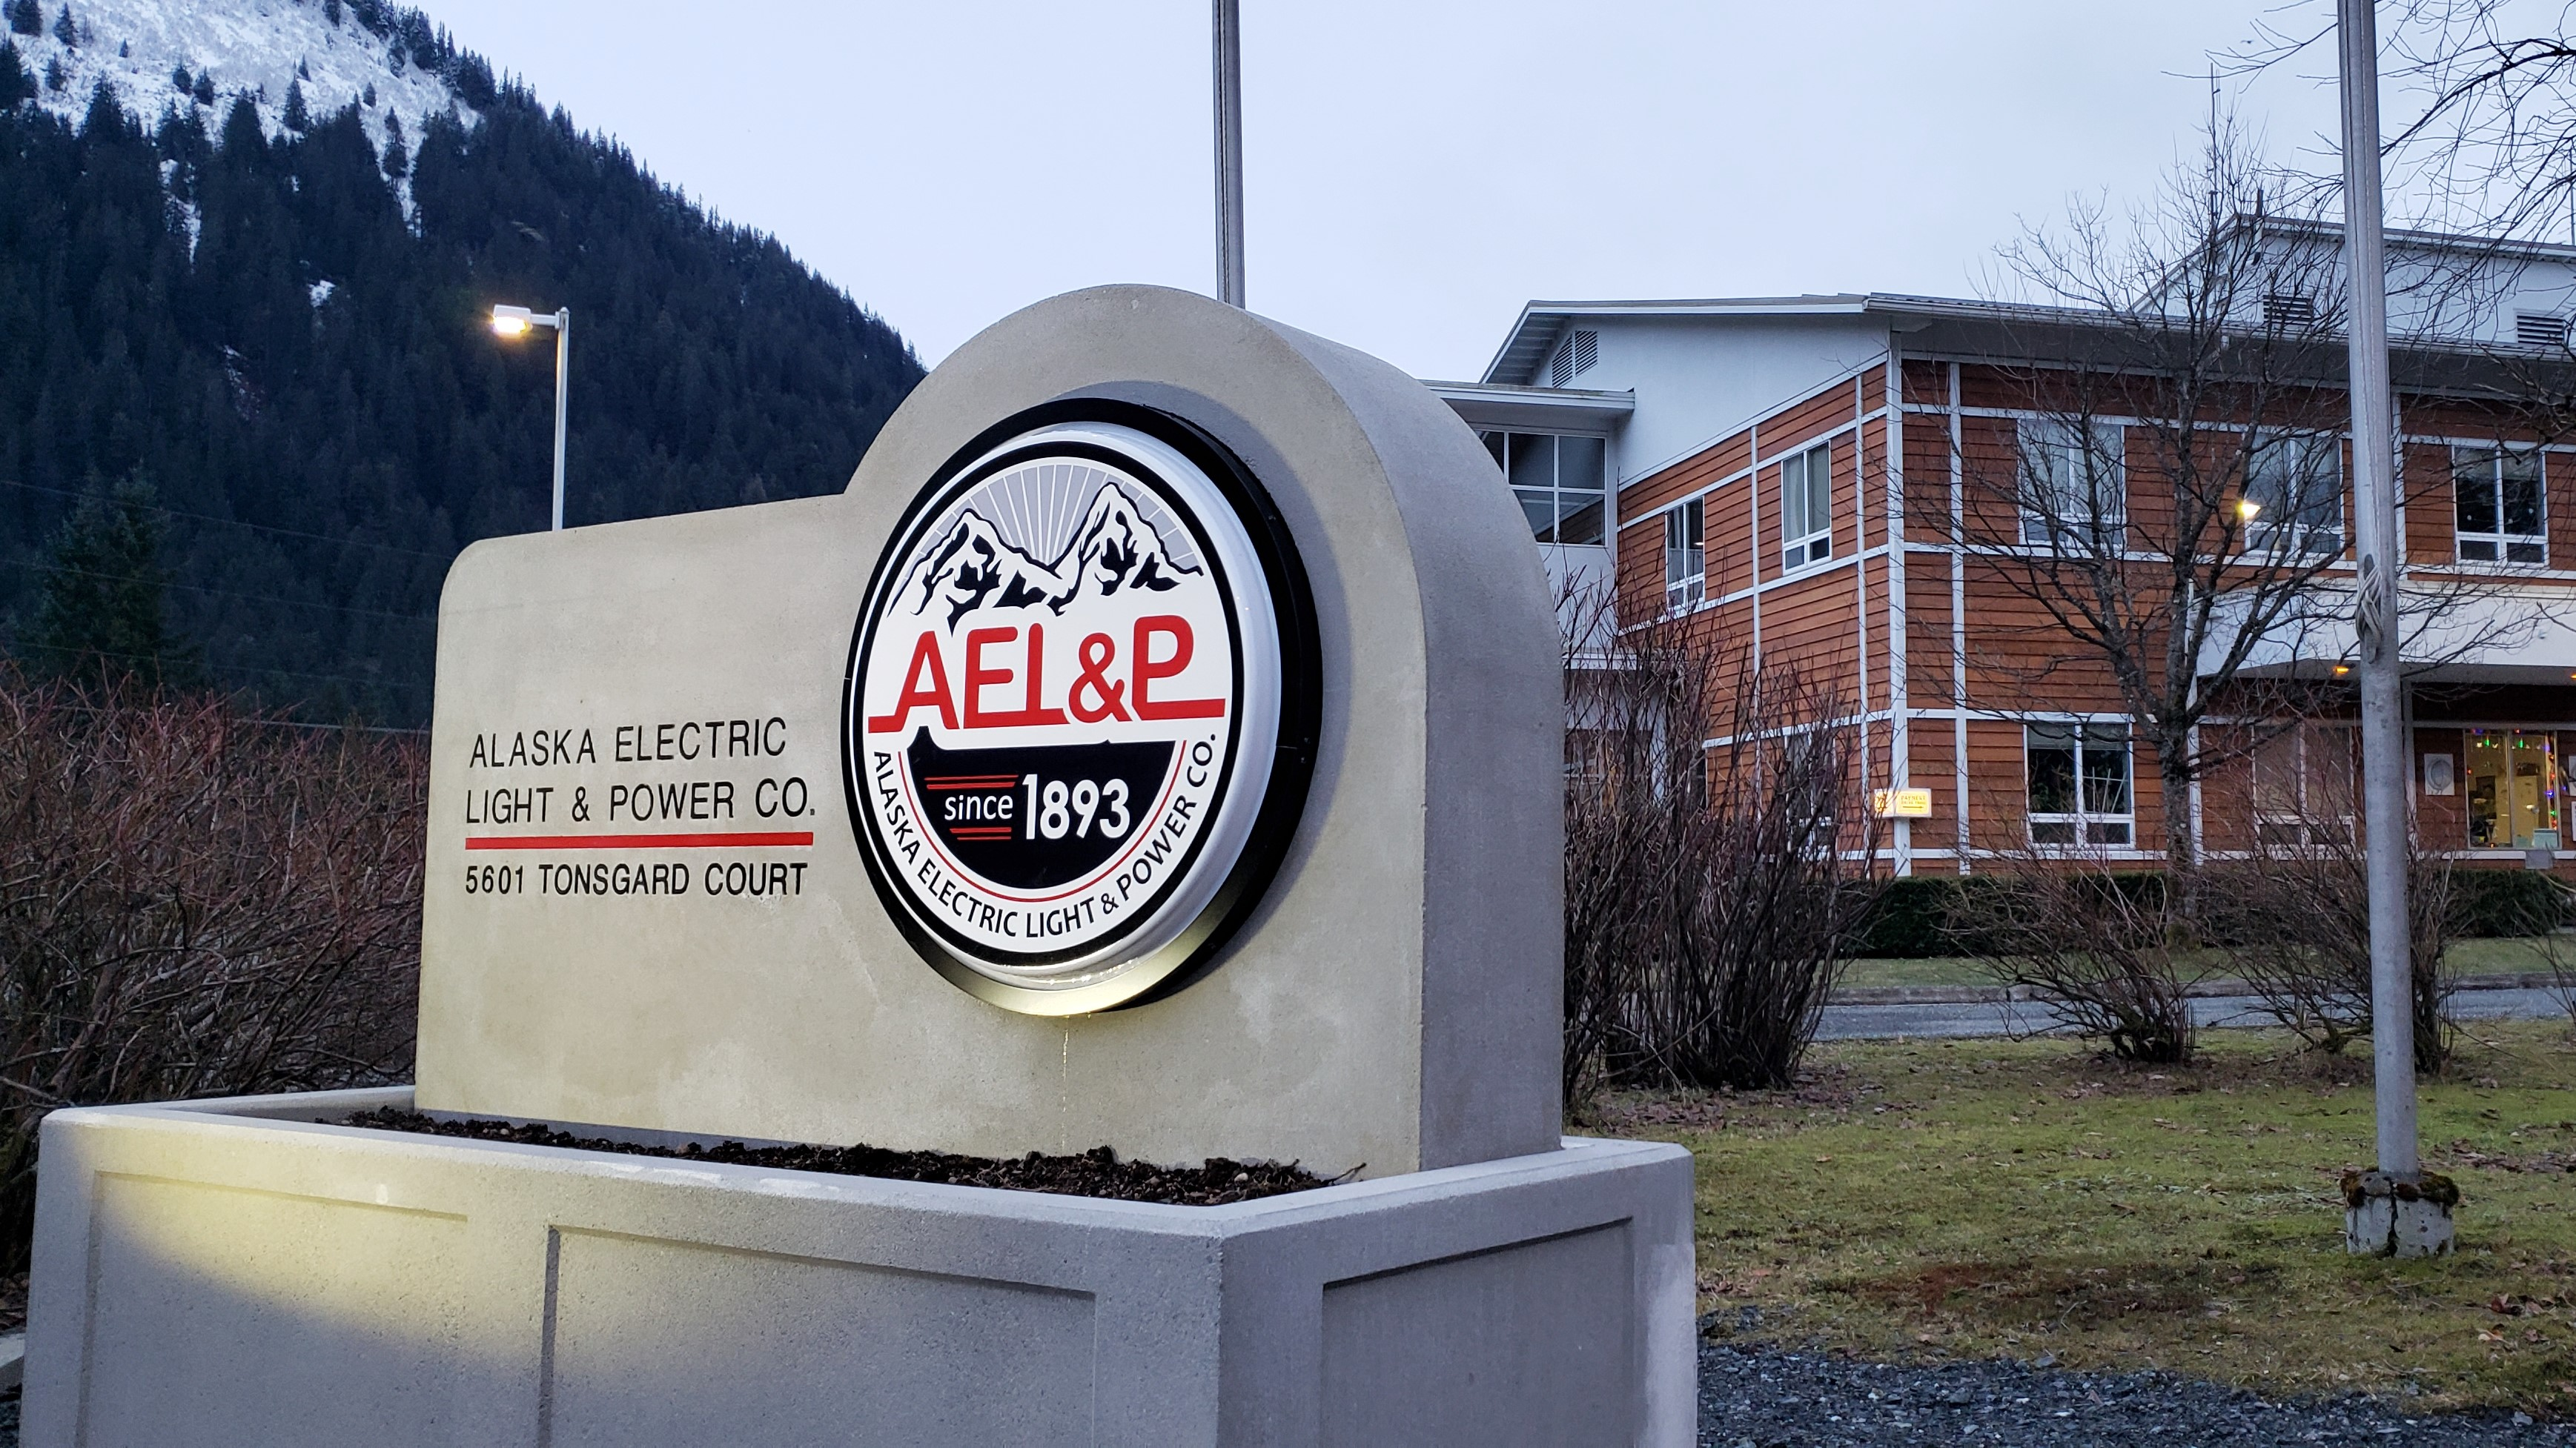 AEL&P, pictured here on Jan. 9, 2021, is located at 5601 Tonsgard Court in Juneau.